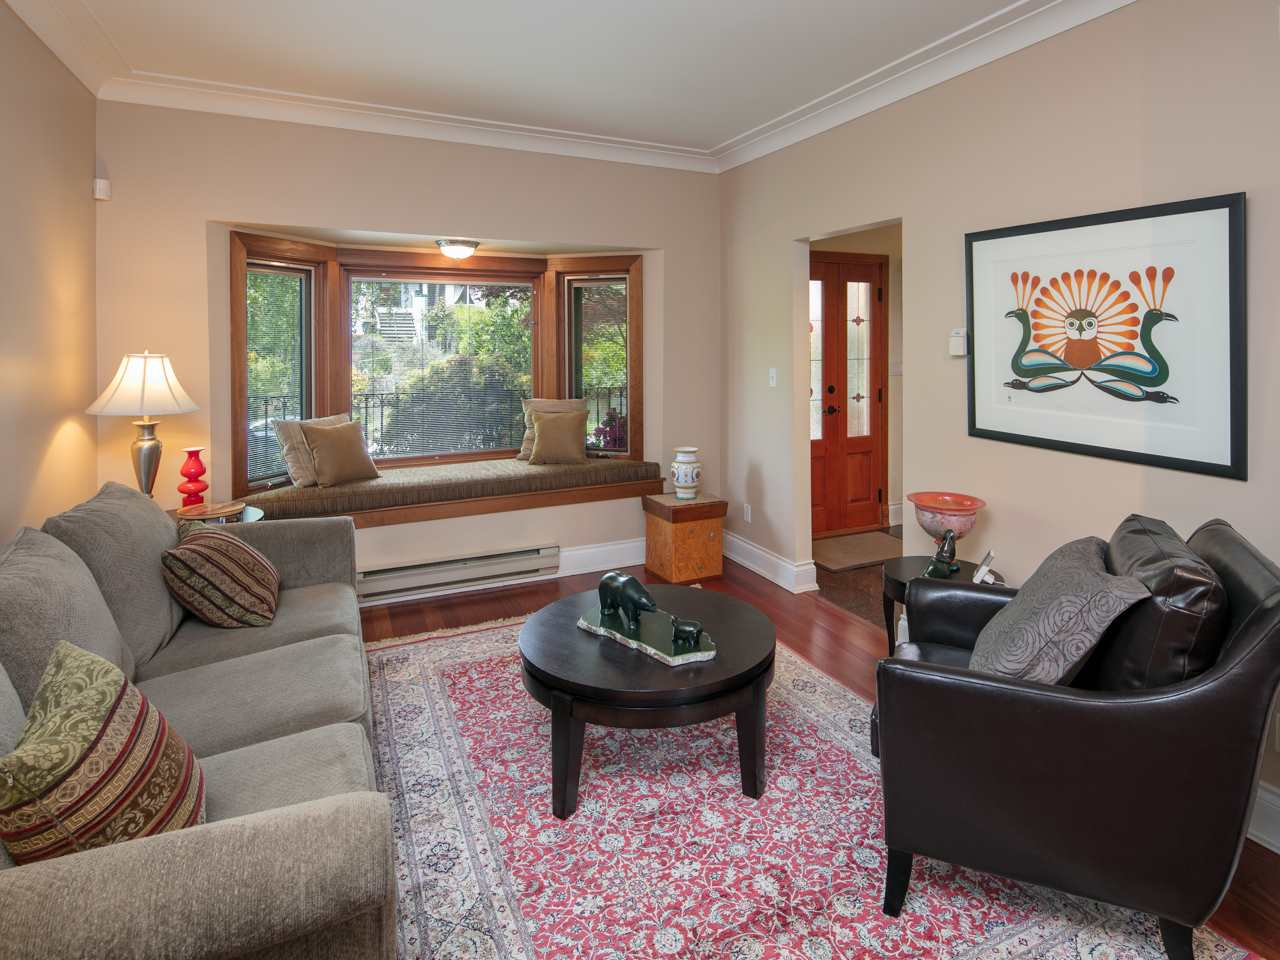 Photo 2: 748 UNION Street in Vancouver: Mount Pleasant VE House for sale (Vancouver East)  : MLS® # R2168904